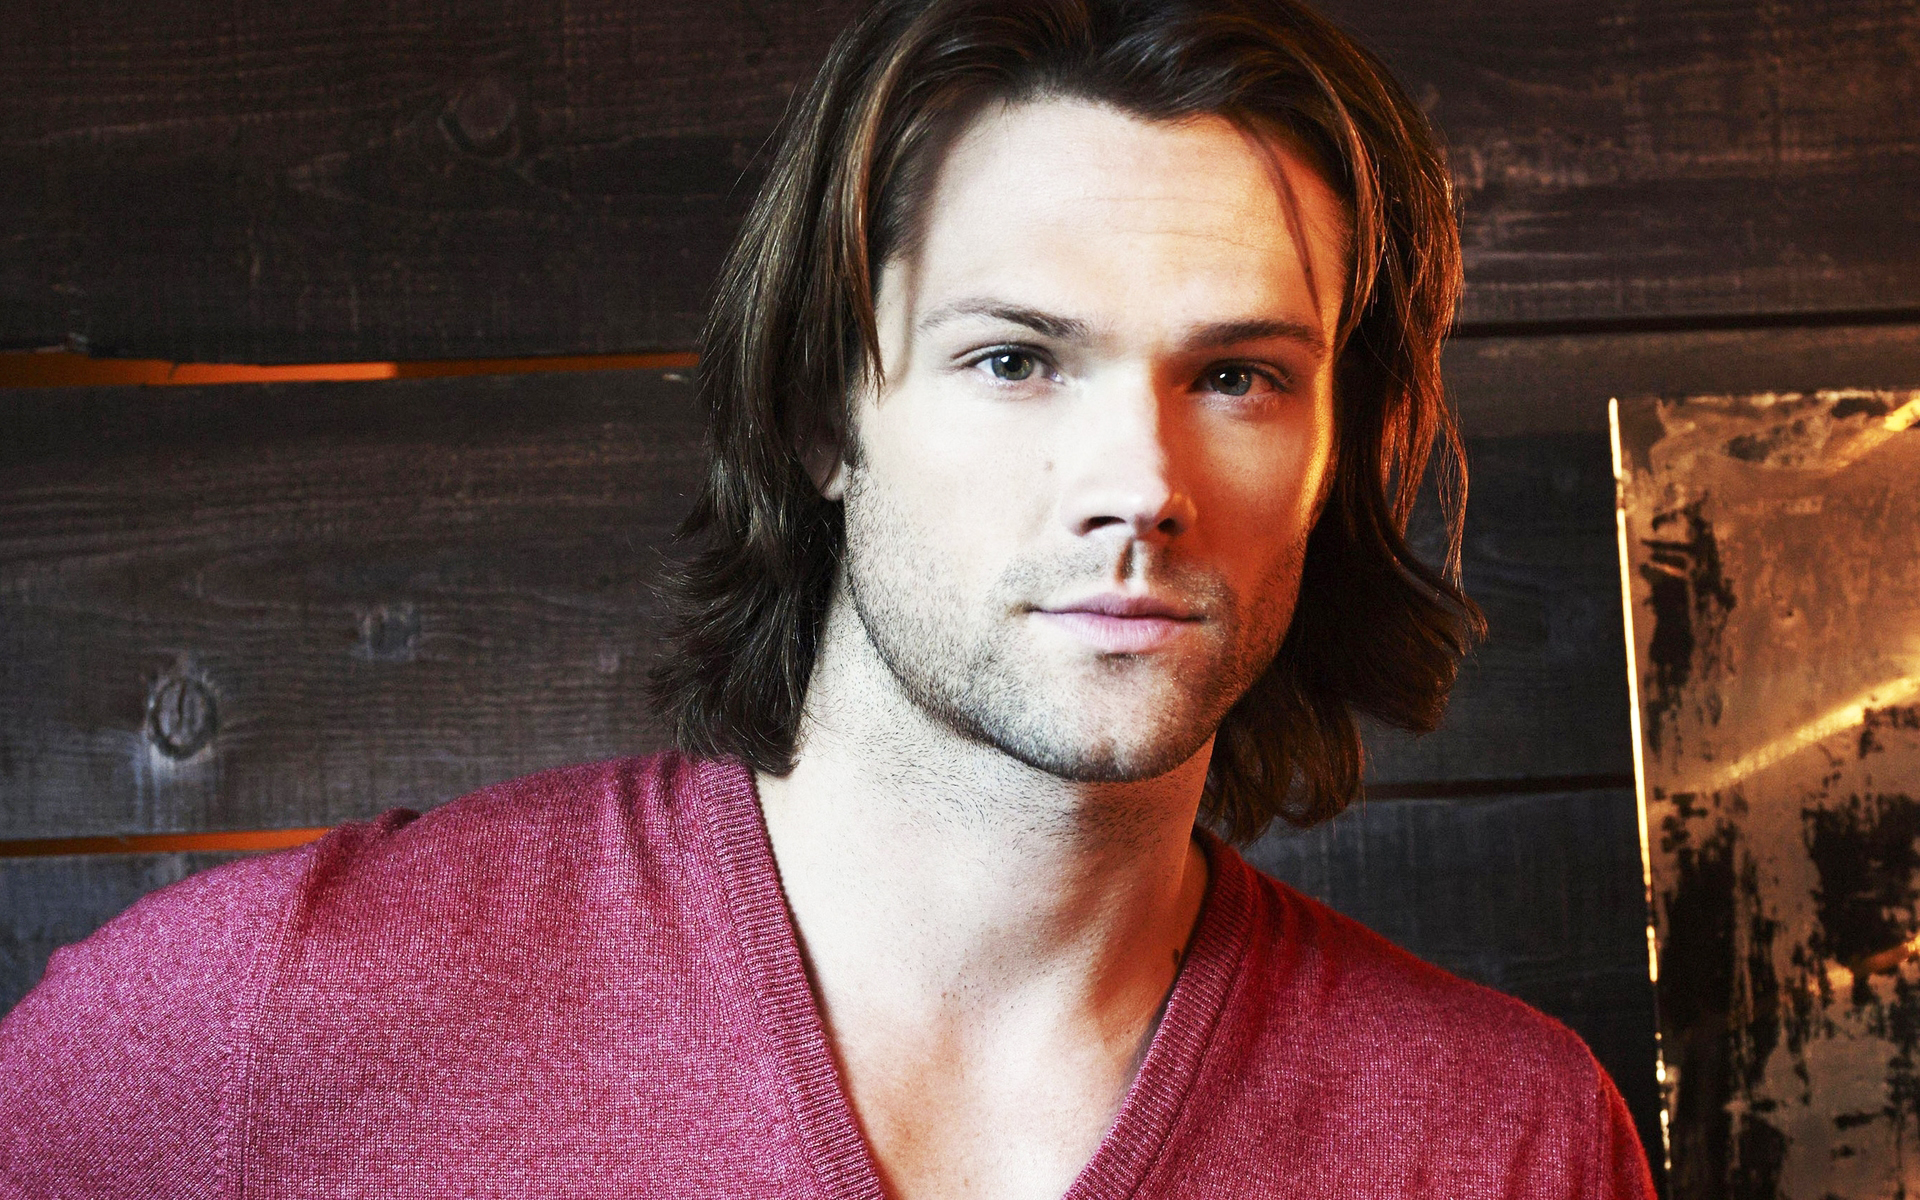 Jared Padalecki Nude Sexy Scenes & Hot ABS Photos Collection